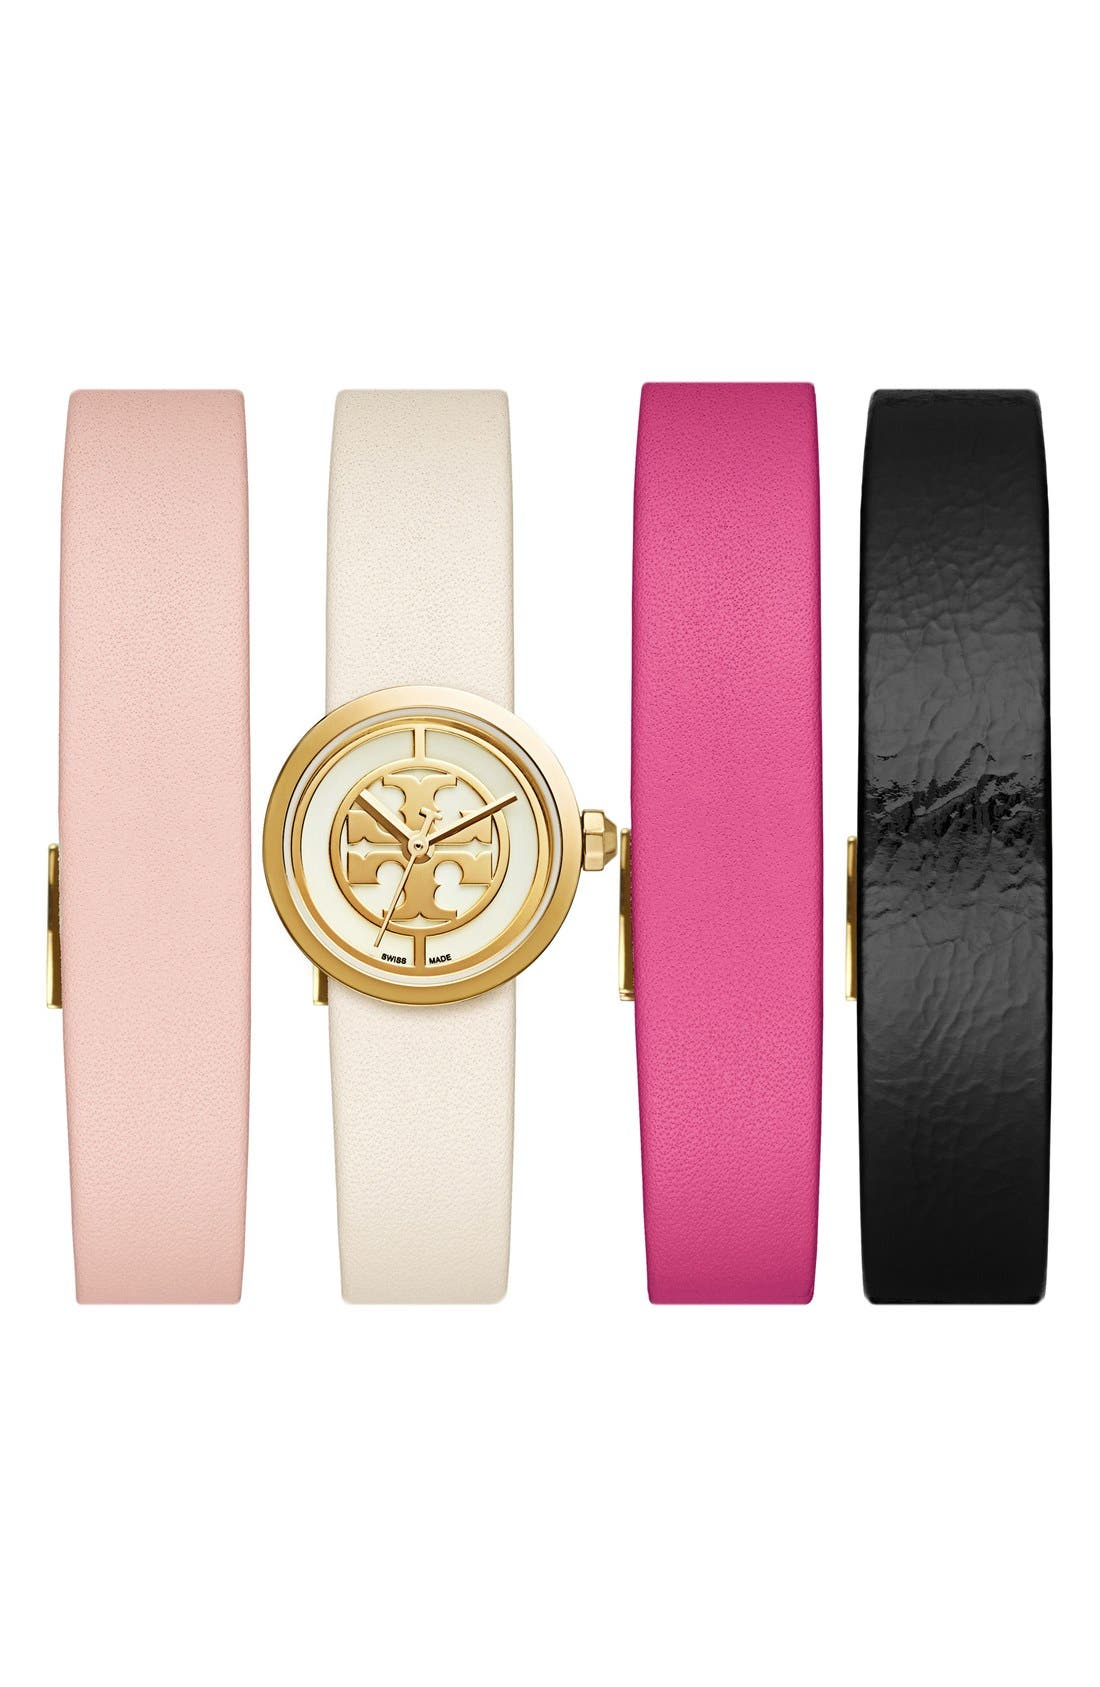 Main Image - Tory Burch 'Reva' Leather Strap Watch Set, 20mm